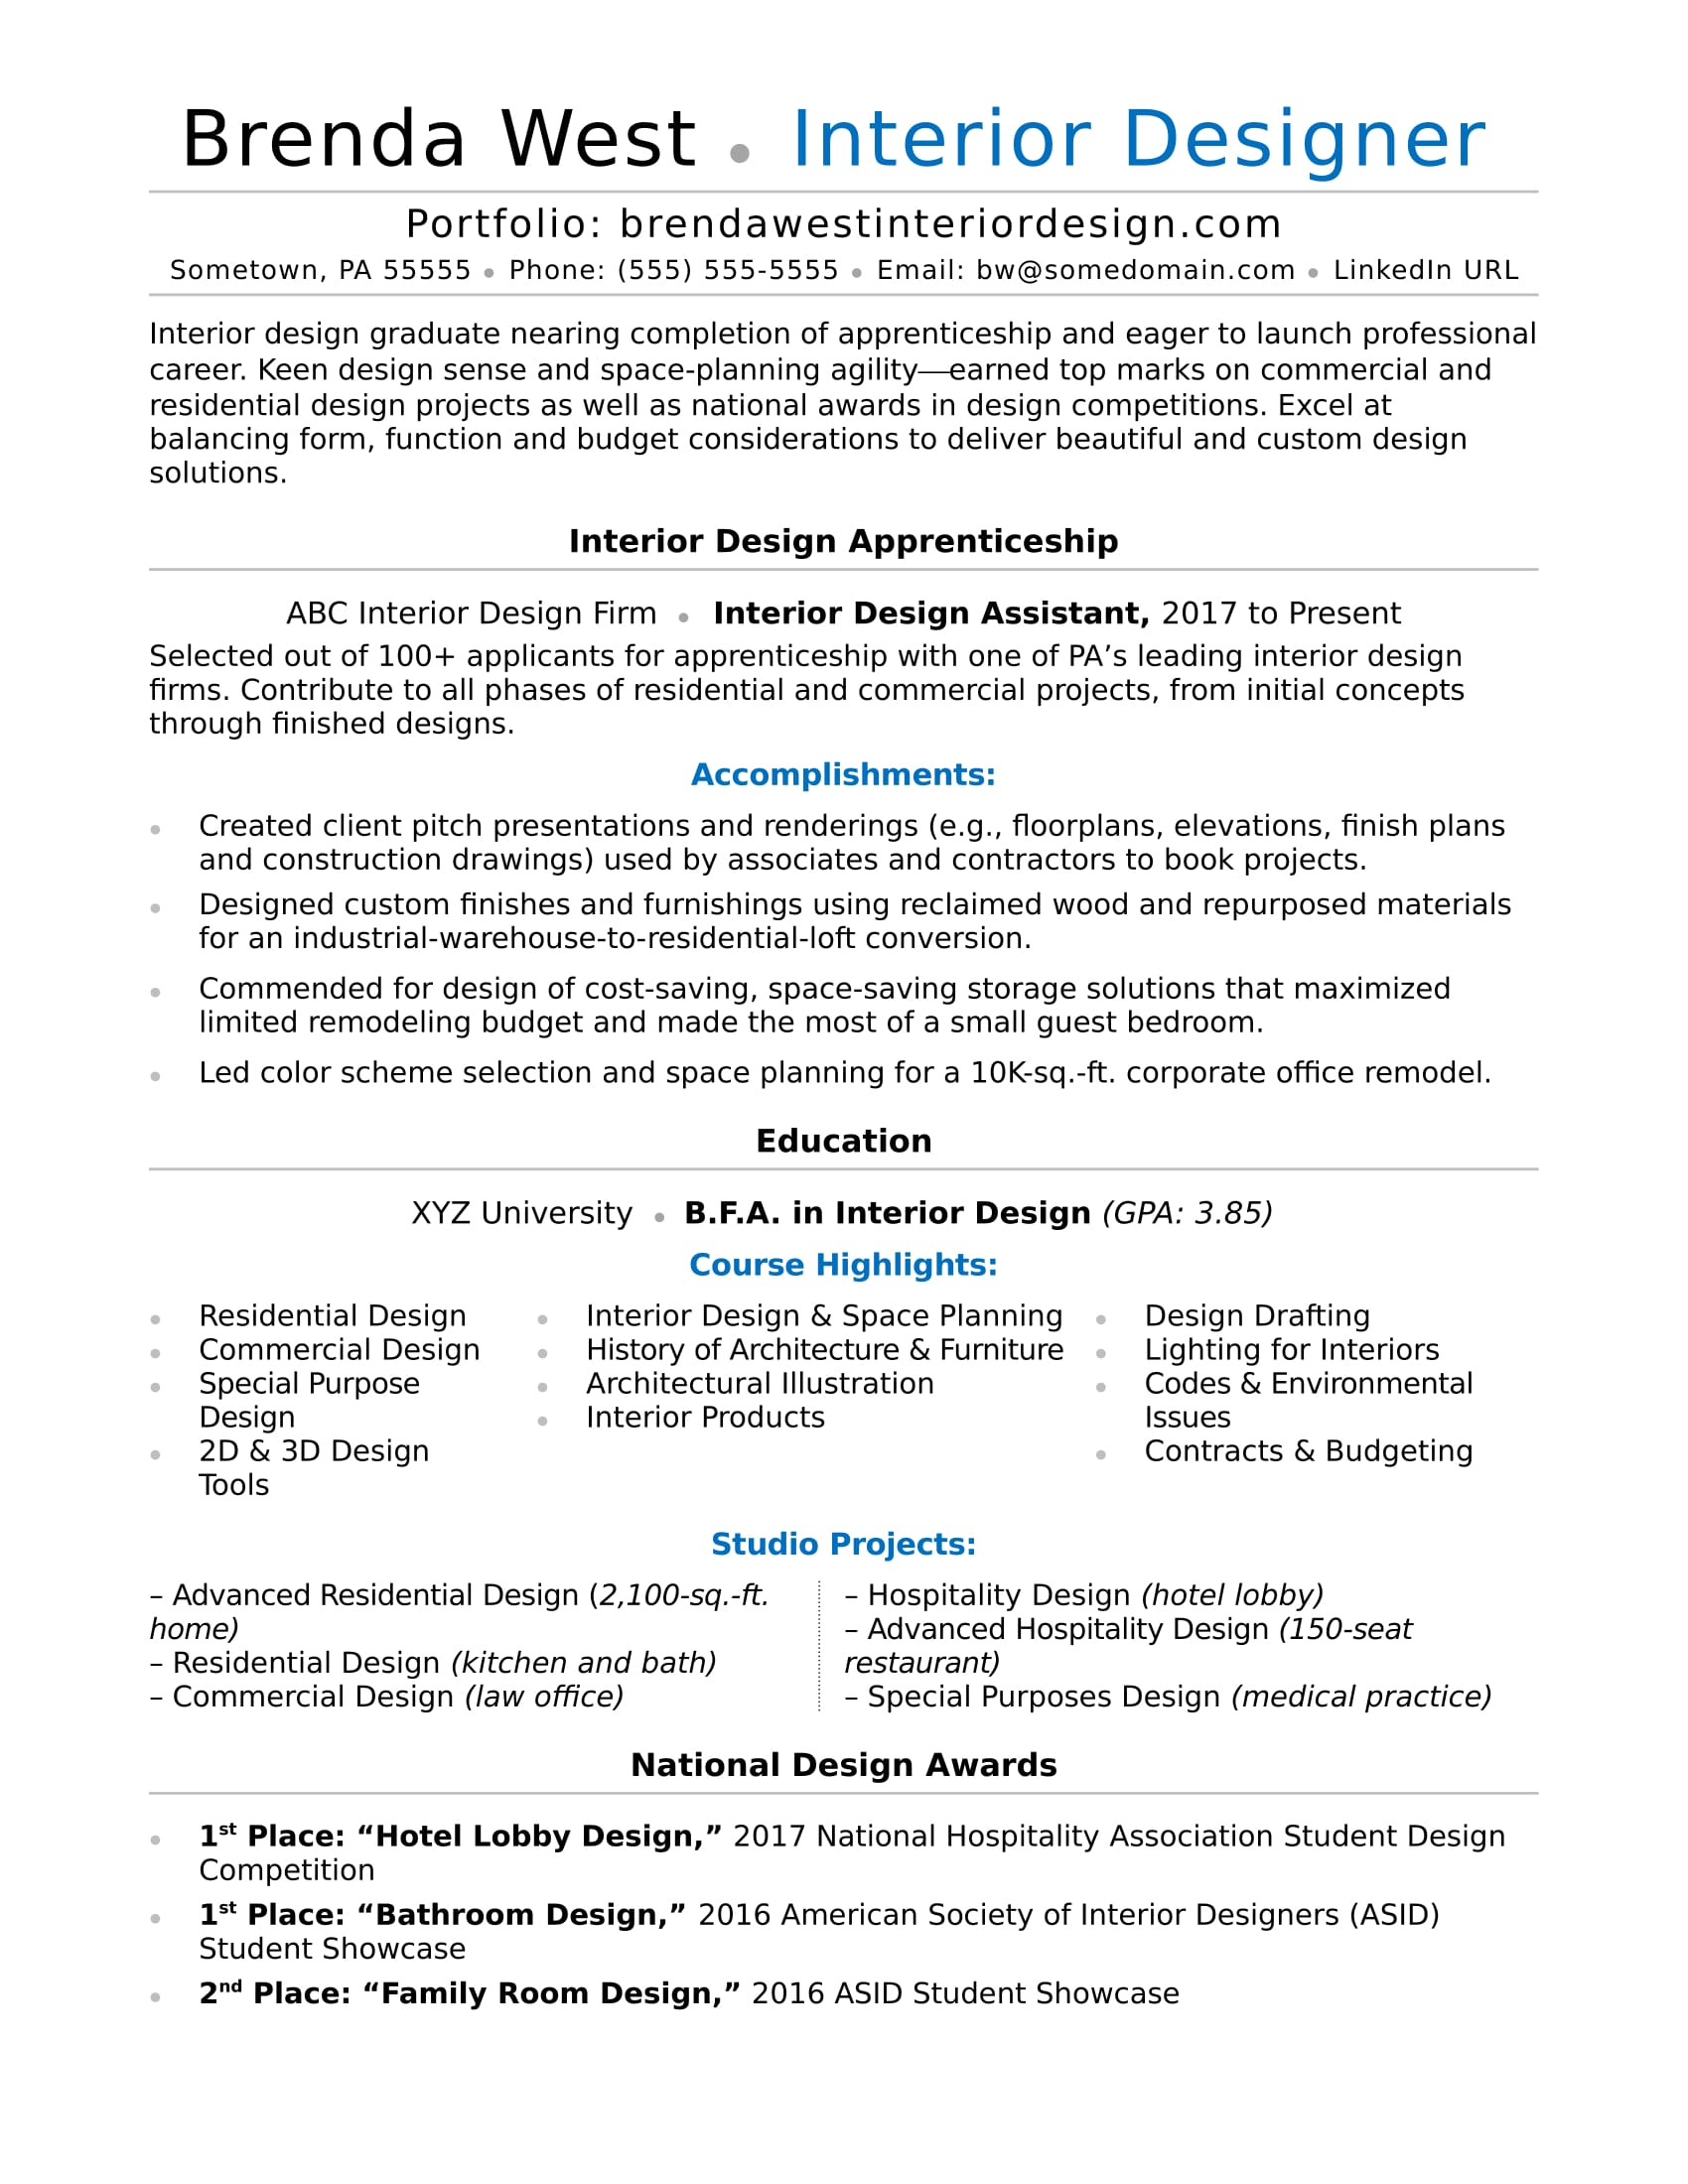 Interior design resume sample for Interior design articles